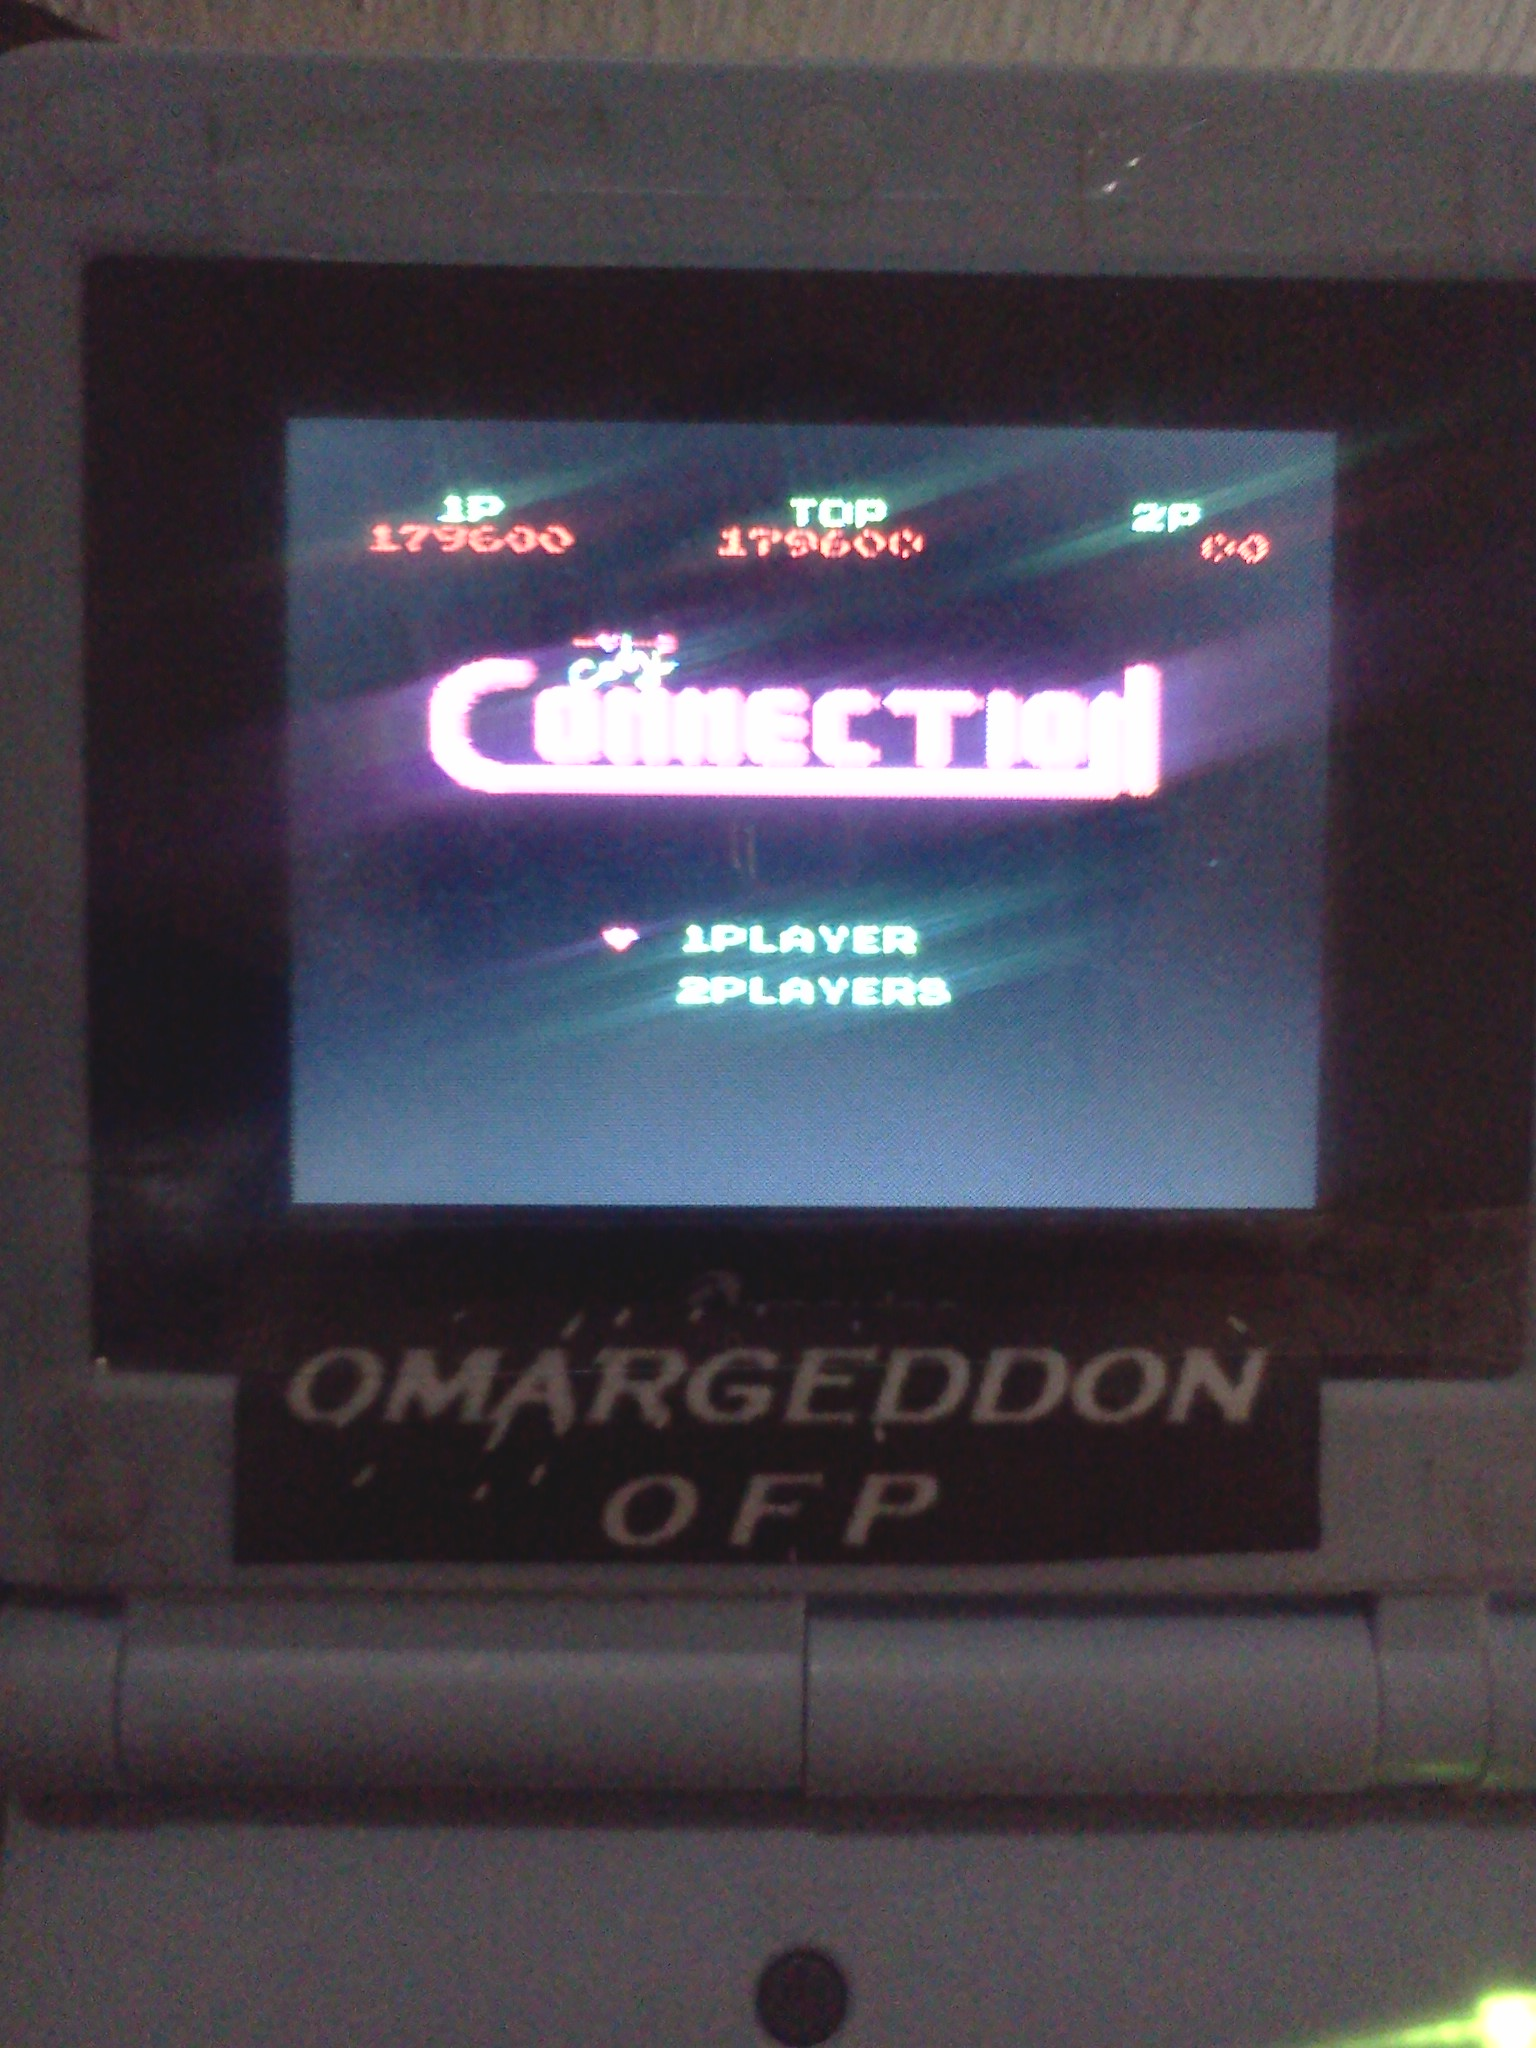 omargeddon: City Connection (NES/Famicom Emulated) 179,600 points on 2016-08-02 10:22:08